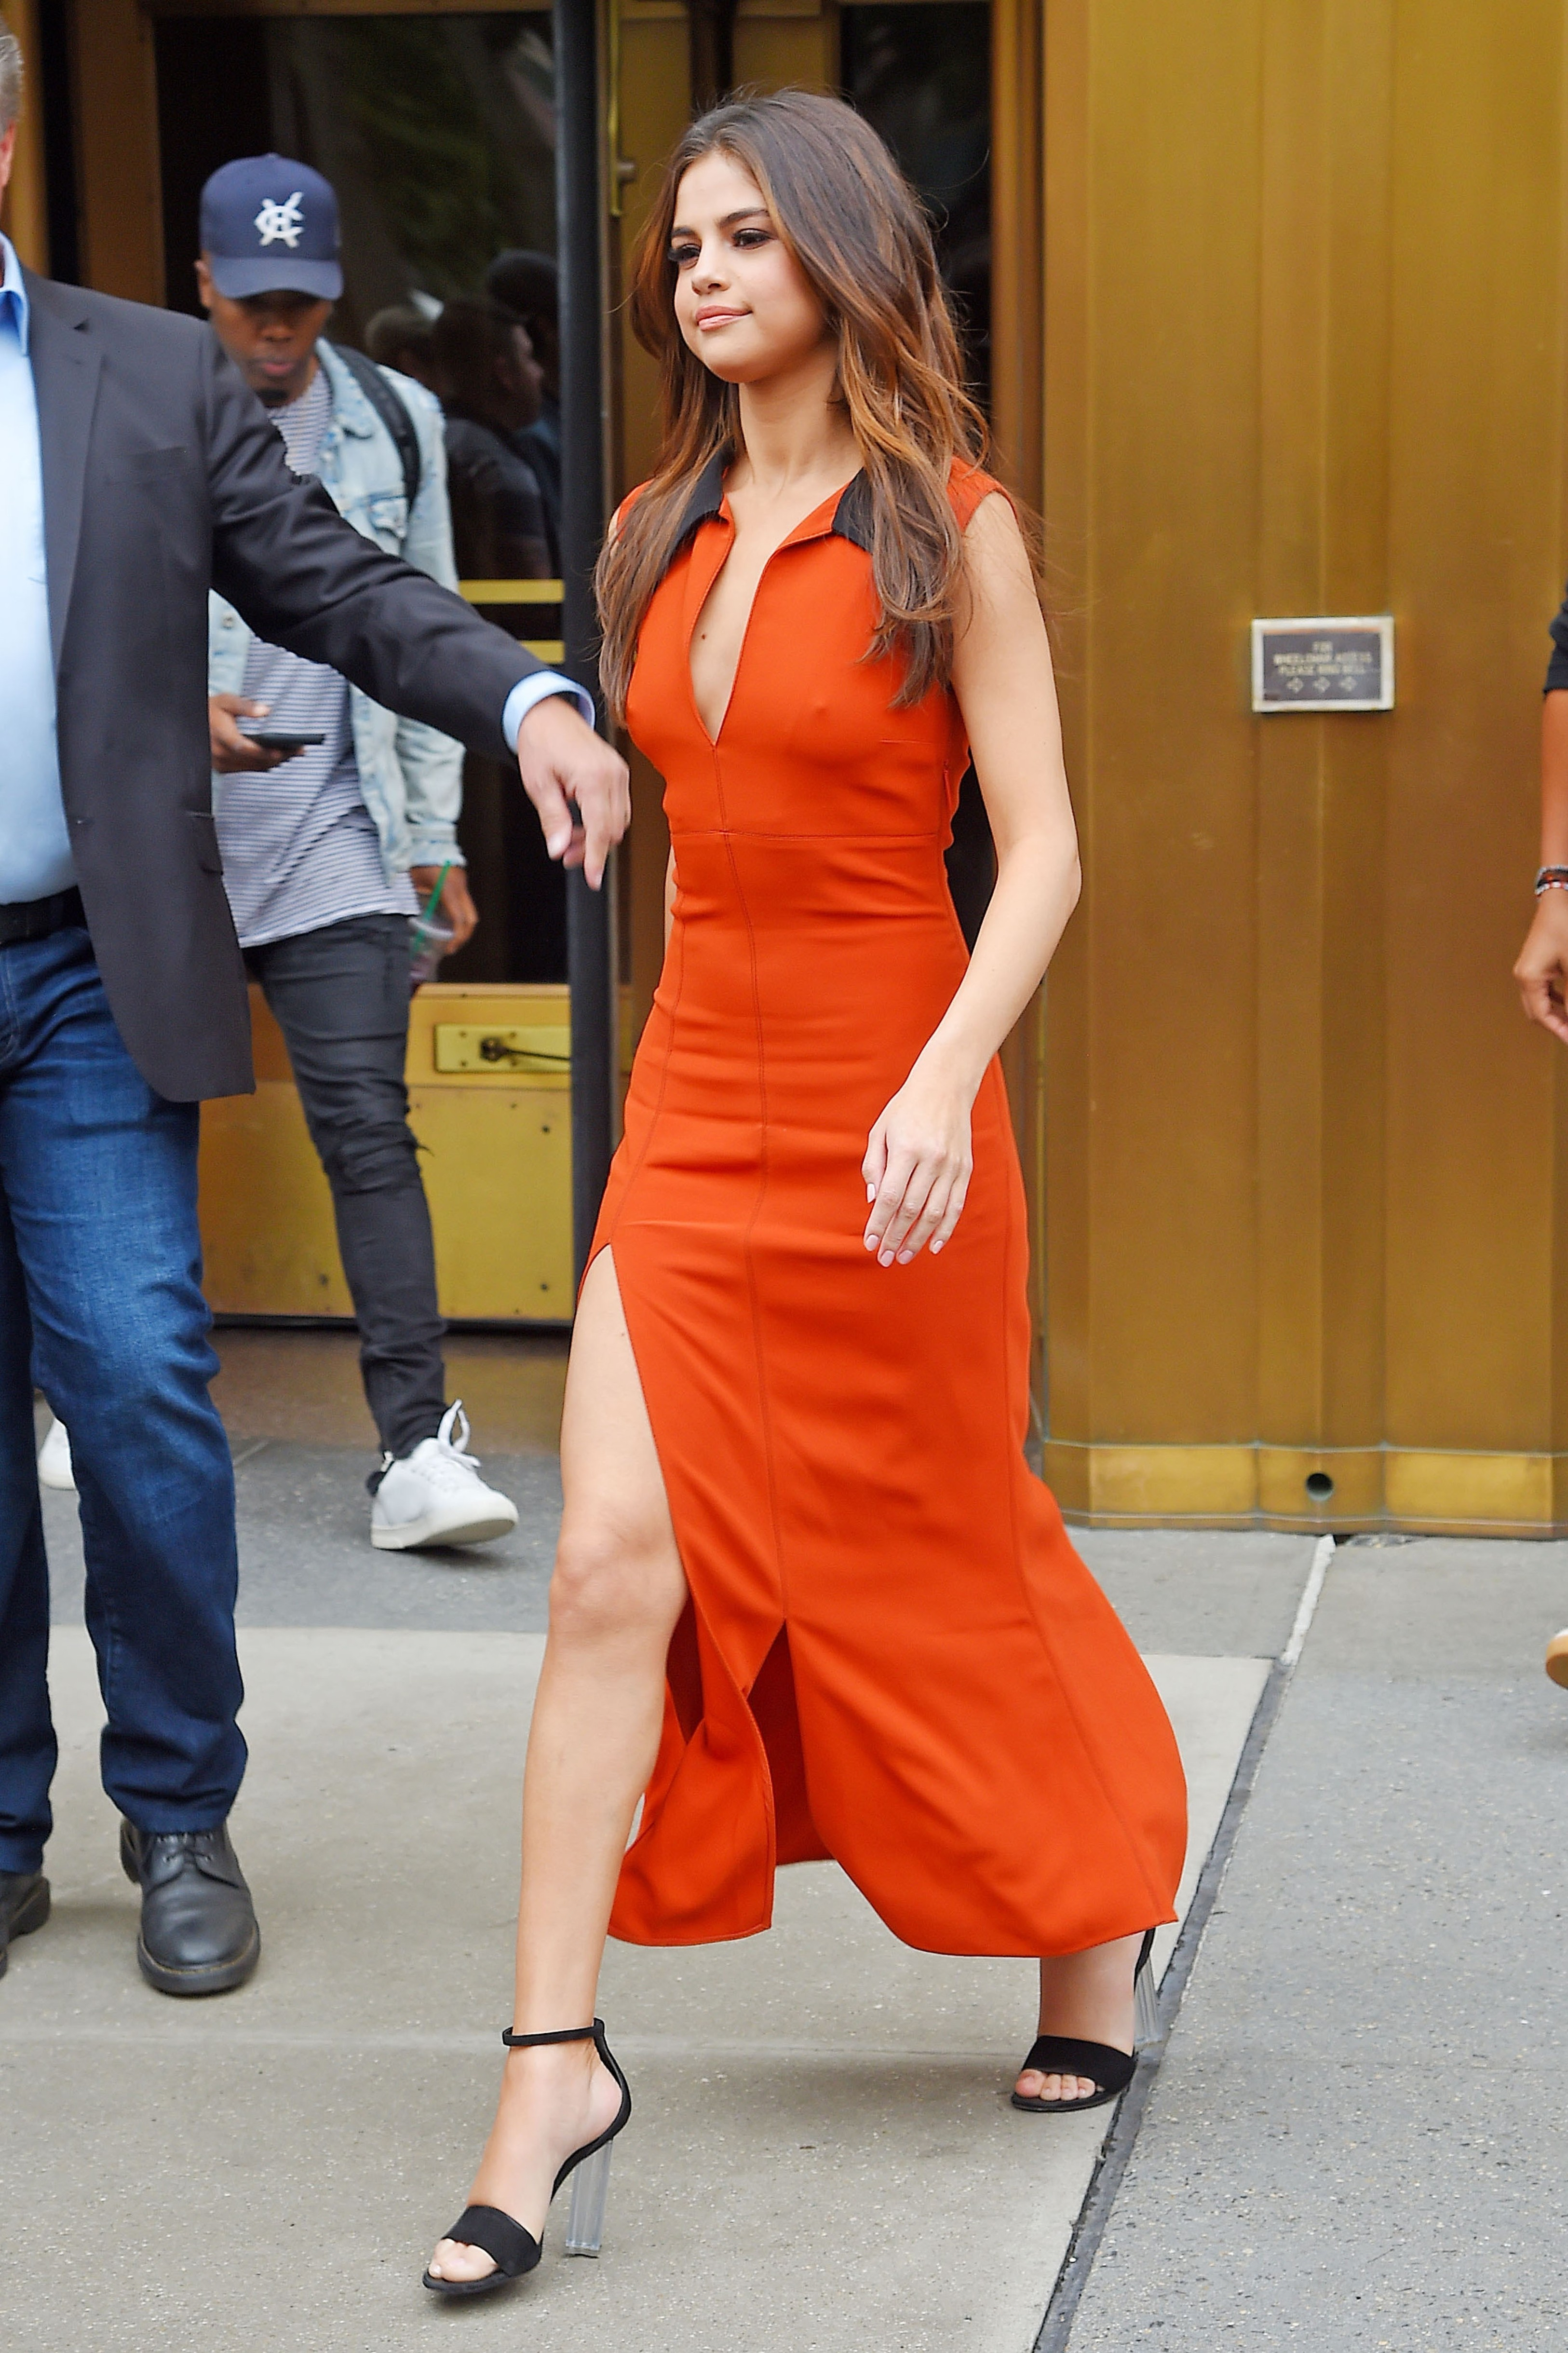 New York, NY  - Selena Gomez looks stunning going braless in a form fitted orange dress that shows off some leg as she leaves the z100 Radio Station.  Pictured: Selena Gomez  BACKGRID USA 5 JUNE 2017, Image: 335152969, License: Rights-managed, Restrictions: , Model Release: no, Credit line: Profimedia, AKM-GSI